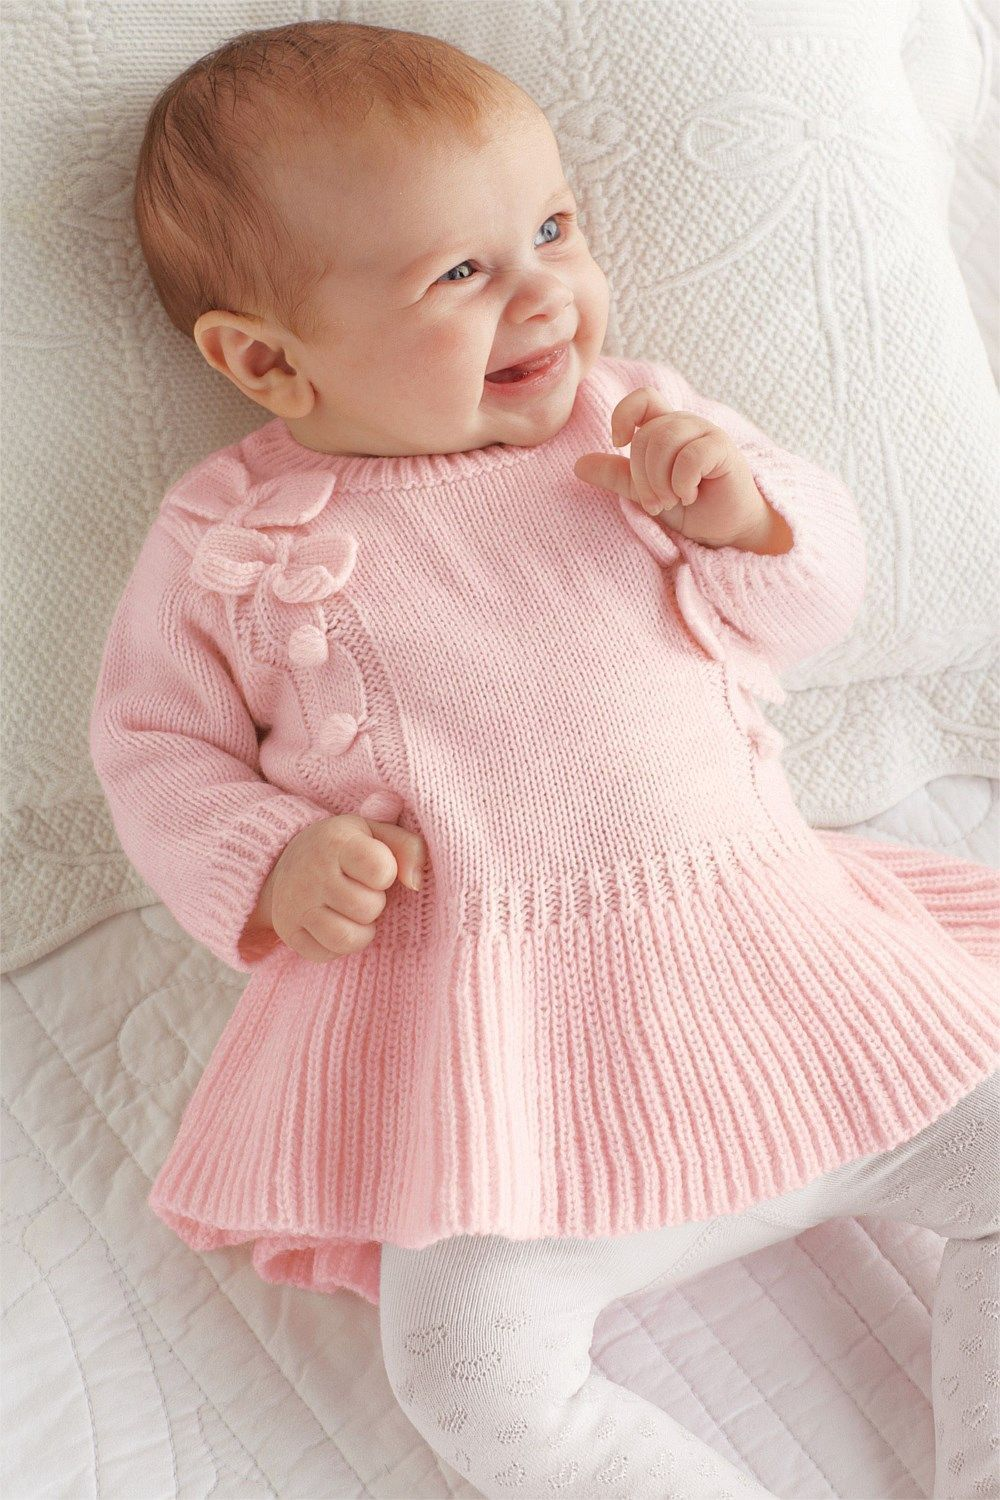 Baby Clothes Online in New Zealand - EziBuy NZ -  Newborn Clothing – Baby Clothes and Infantwear – Next Knitted Dress – EziBuy New Zealand #bab - #Baby #Clothes #EziBuy #knittingforbabiesnewborns #Online #Zealand